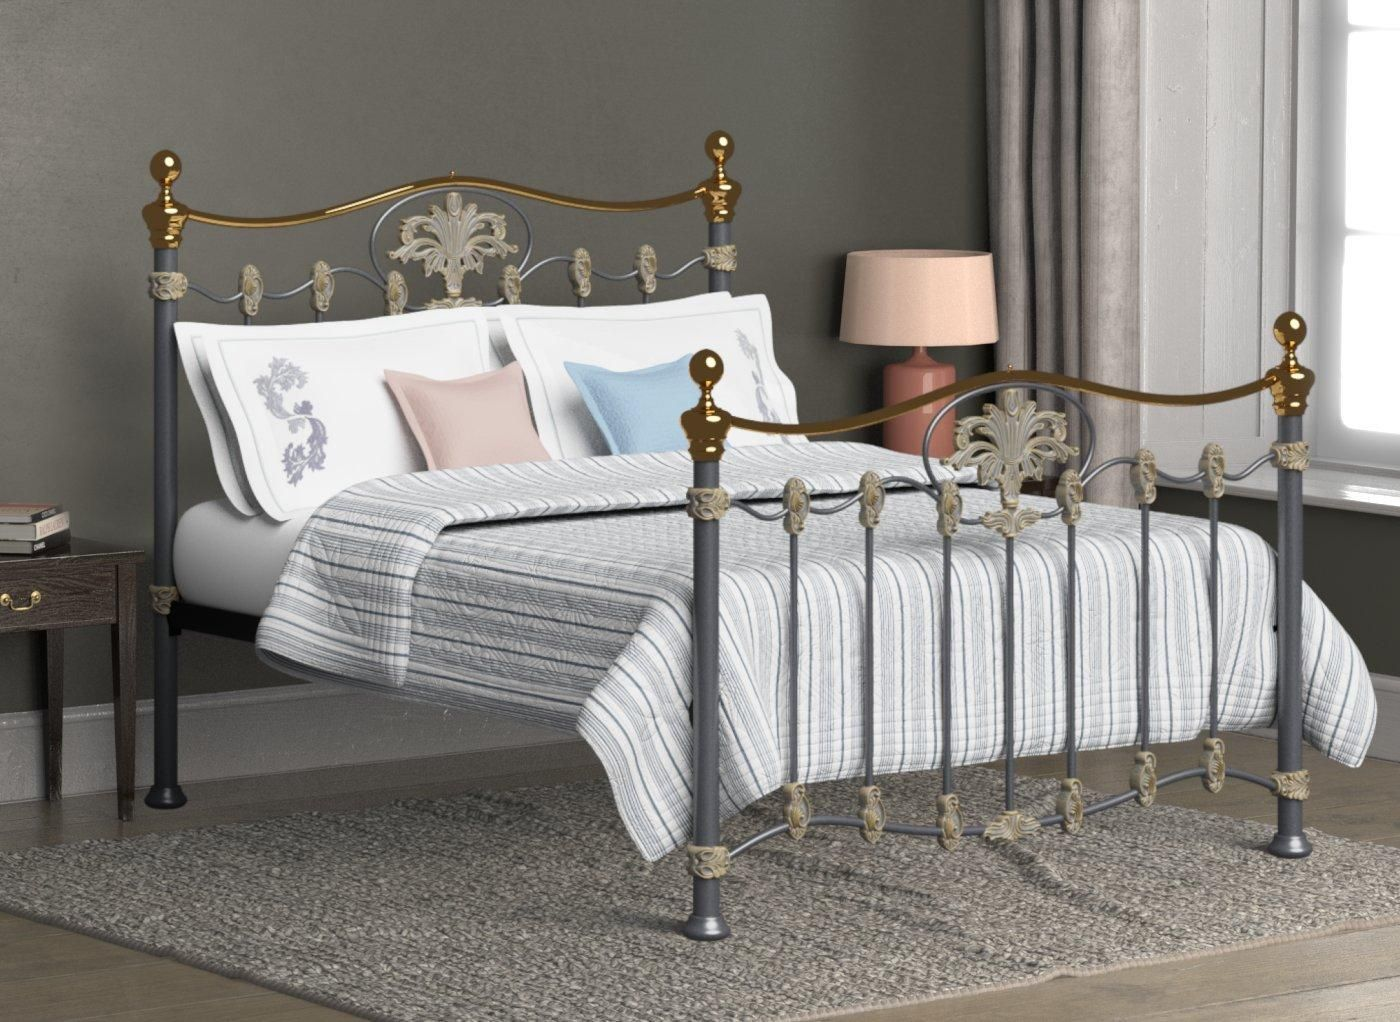 Camolin Brass Metal Bed Frame 6'0 Super king SILVER